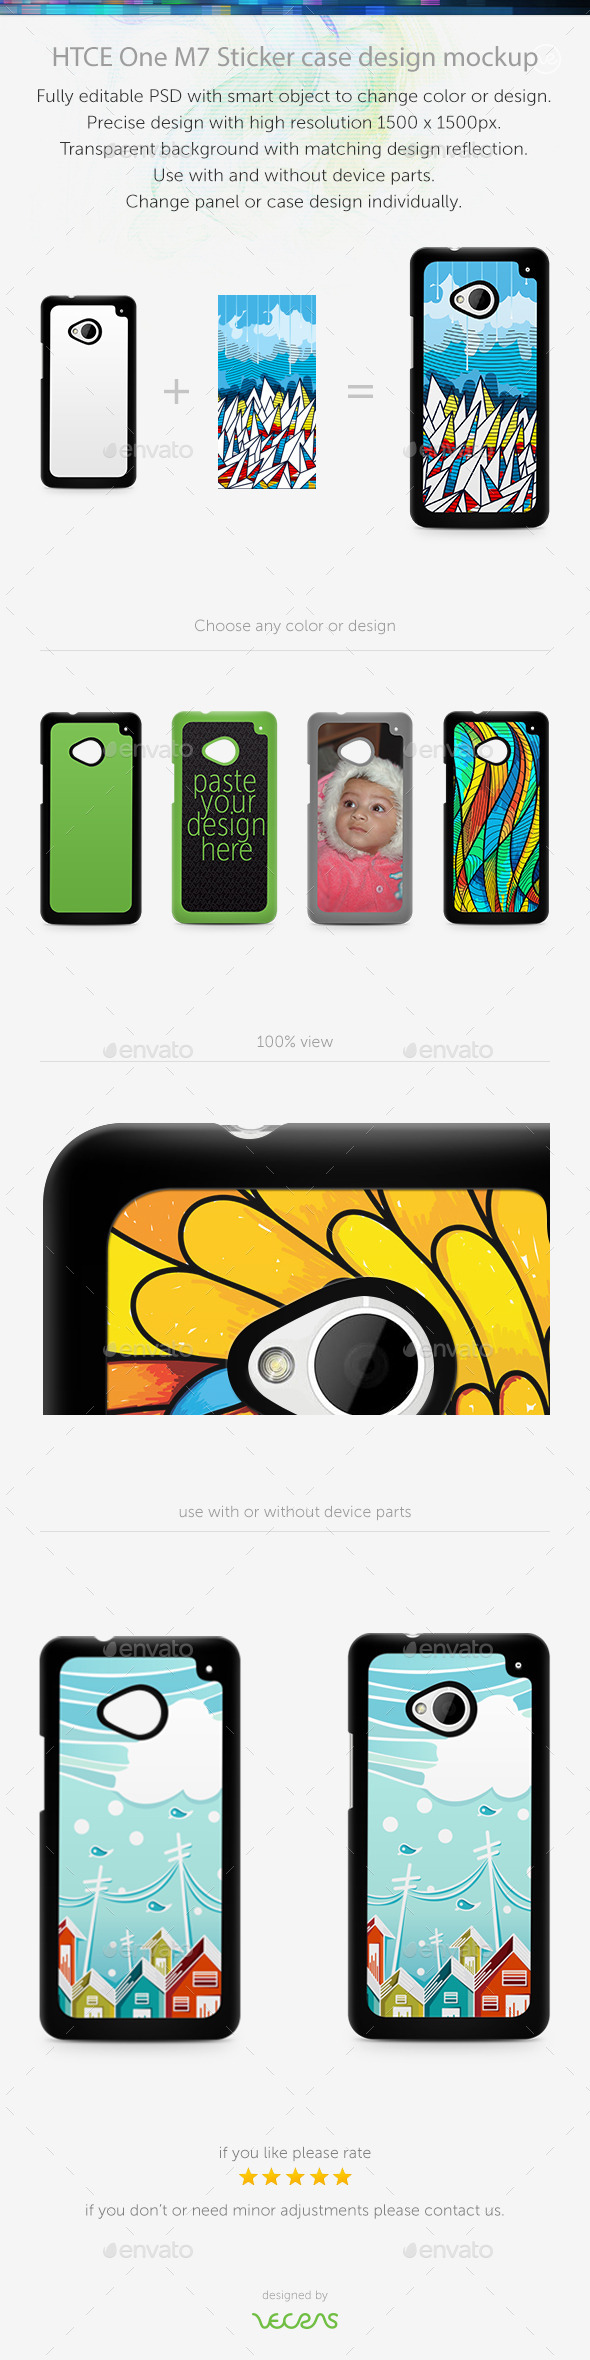 HTCE One M7 Sticker Case Design Mockup - Mobile Displays